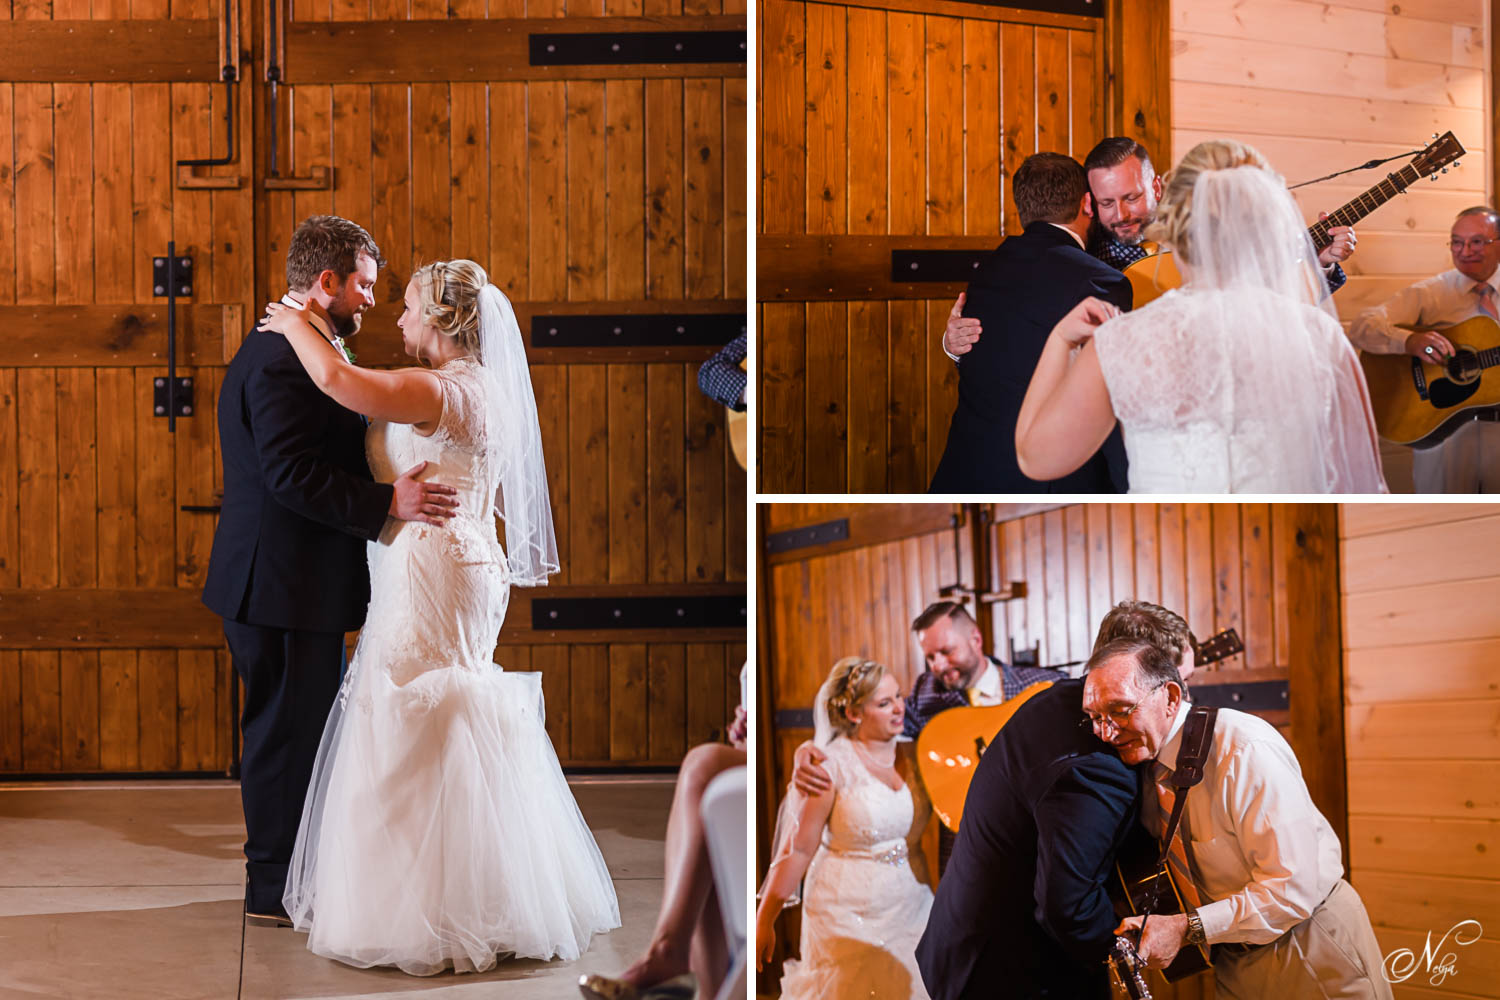 wedding first dance in front of the great big oak doors at Hiwassee River weddings